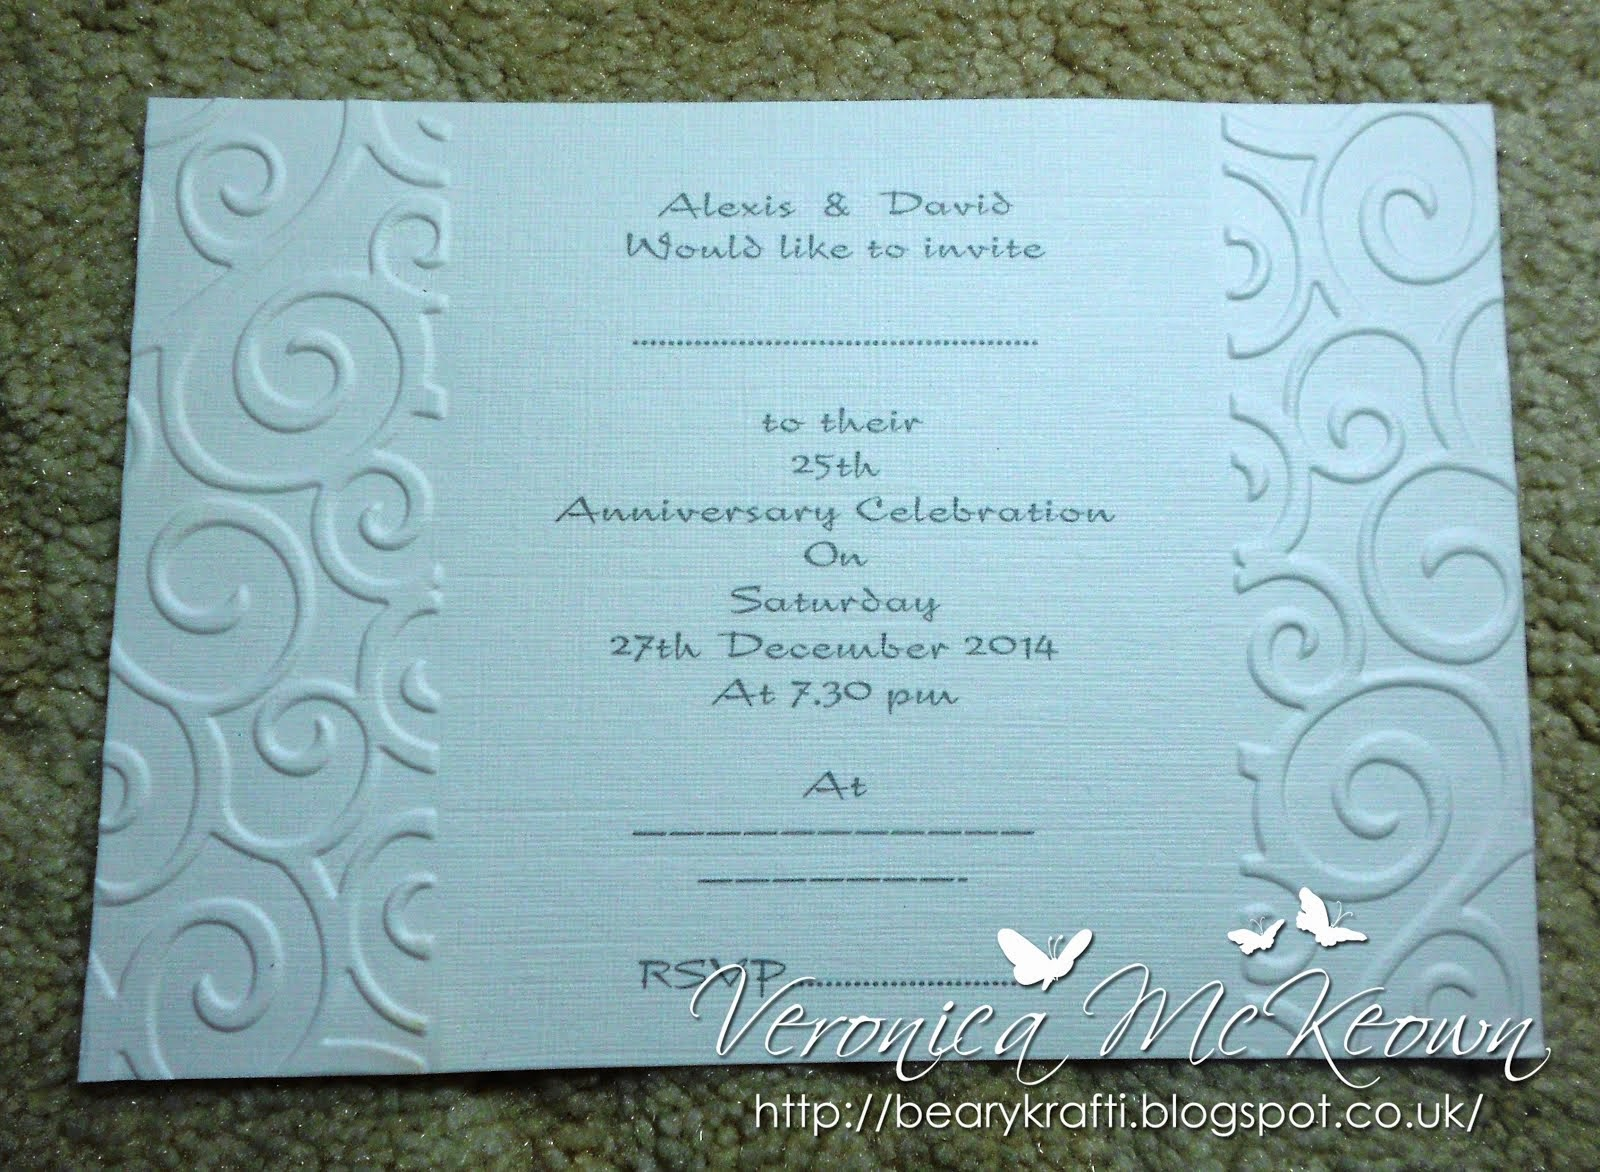 WEDDING / ANNIVERSARY INVITATIONS